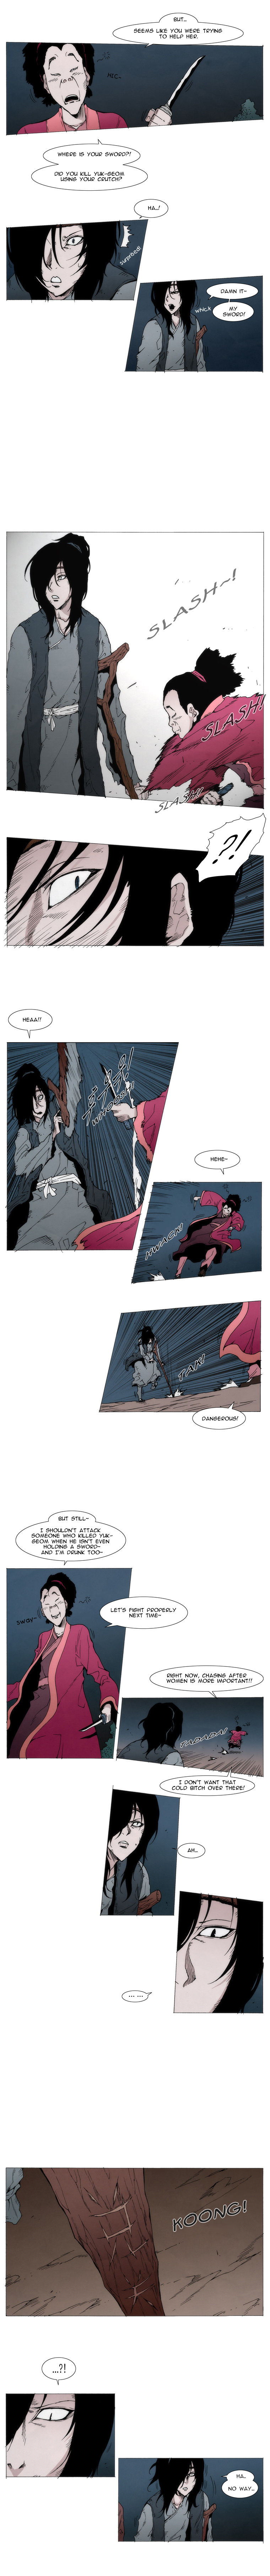 Living with One Leg 5 Page 2